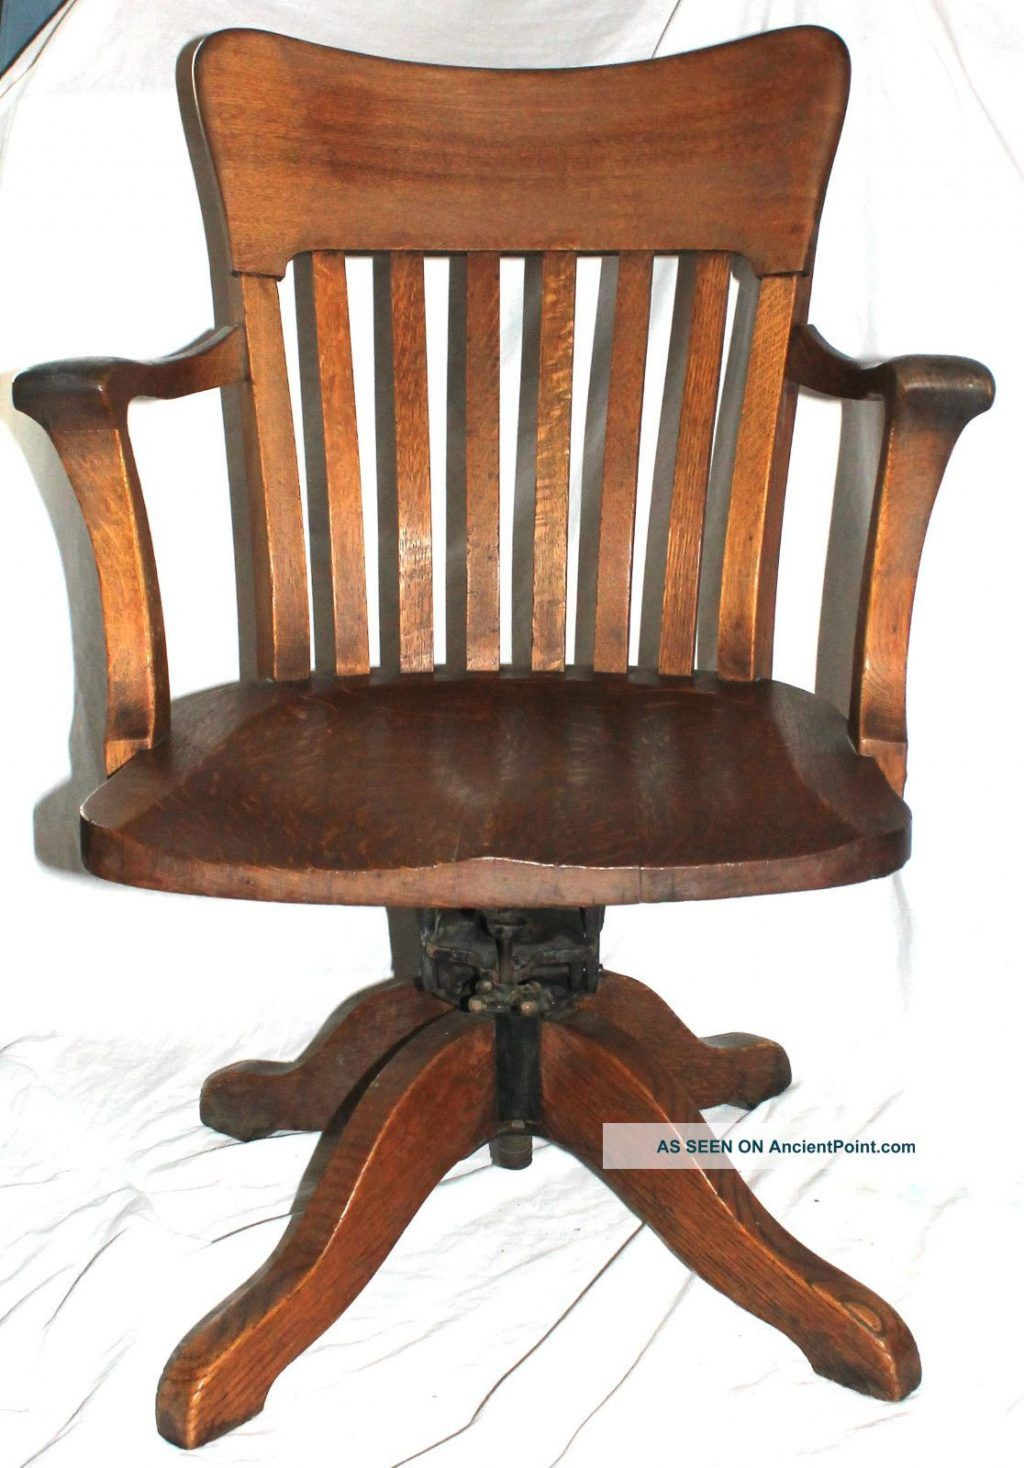 Wooden Office Chairs Without Wheels Wooden Desk Chairs Antique Desk Chair Wooden Office Chair